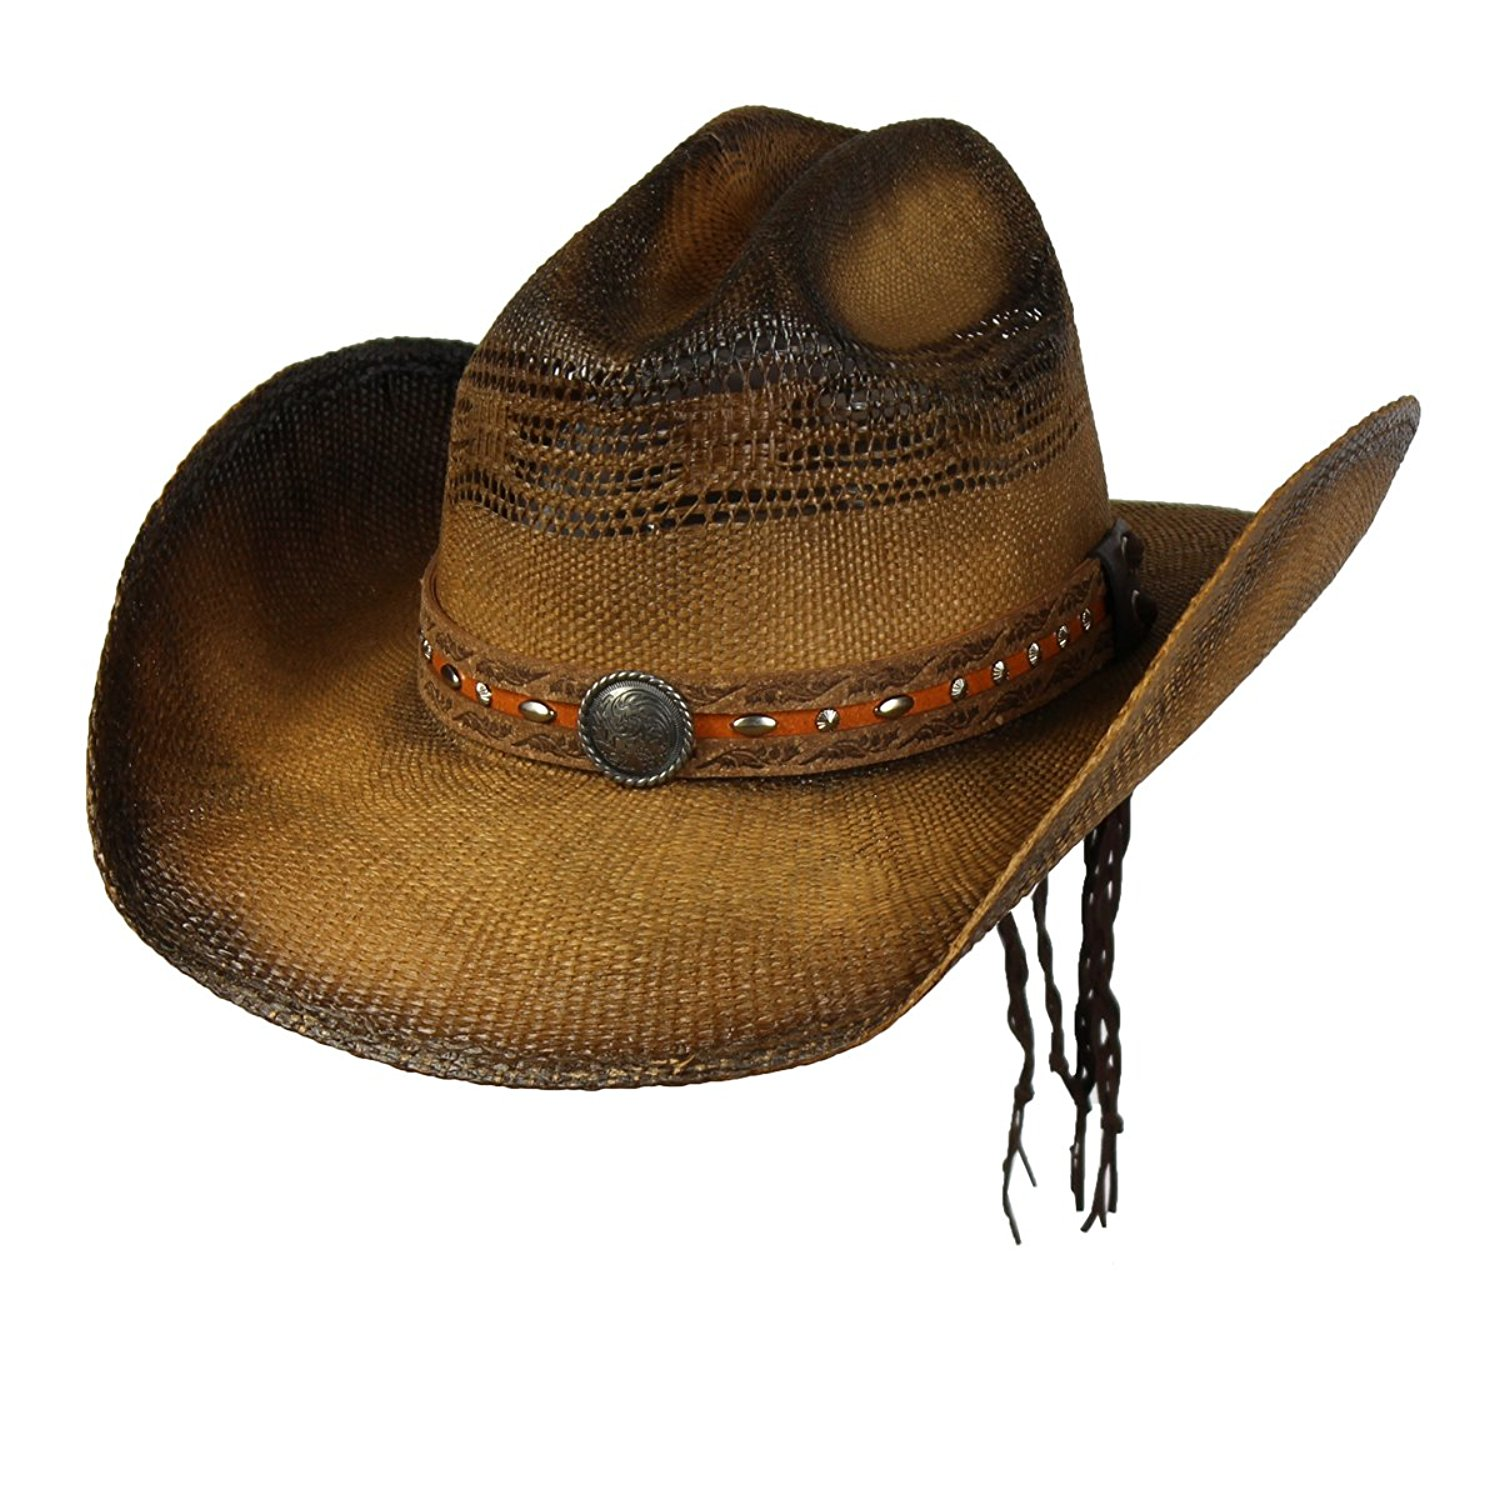 b5feea2e031ff Get Quotations · Saddleback Hats Brown Shapeable Bangora Straw Cowboy  Western Hat w Concho Studs